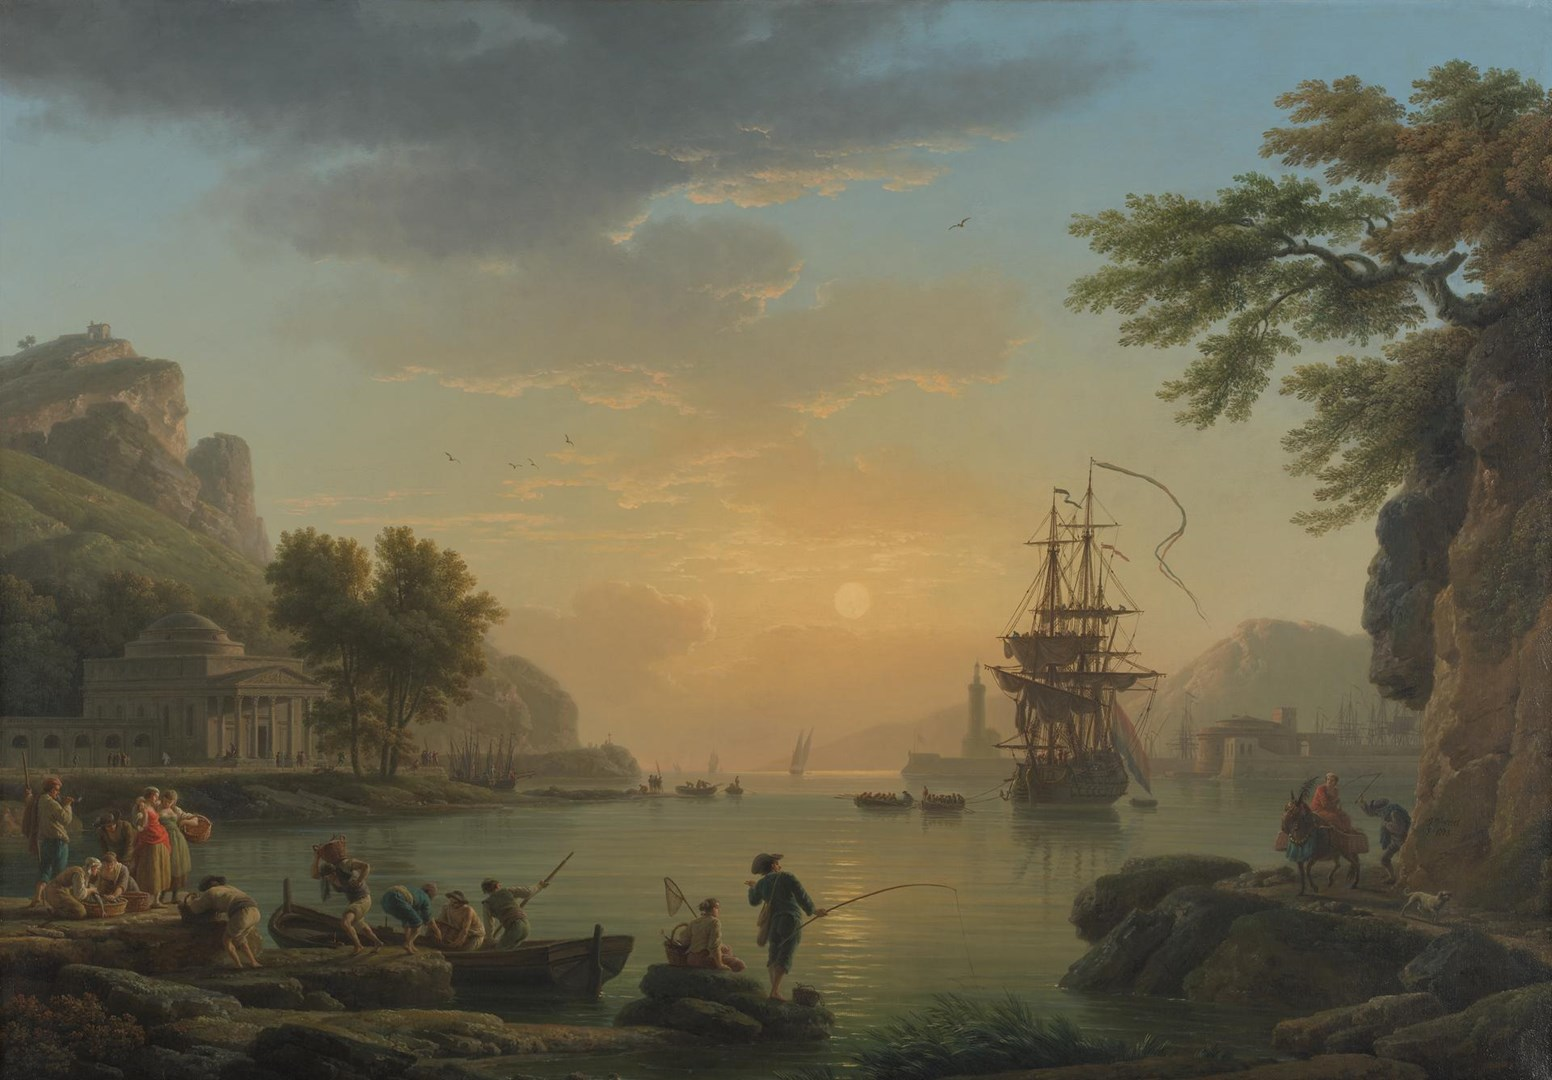 A Landscape at Sunset by Claude-Joseph Vernet